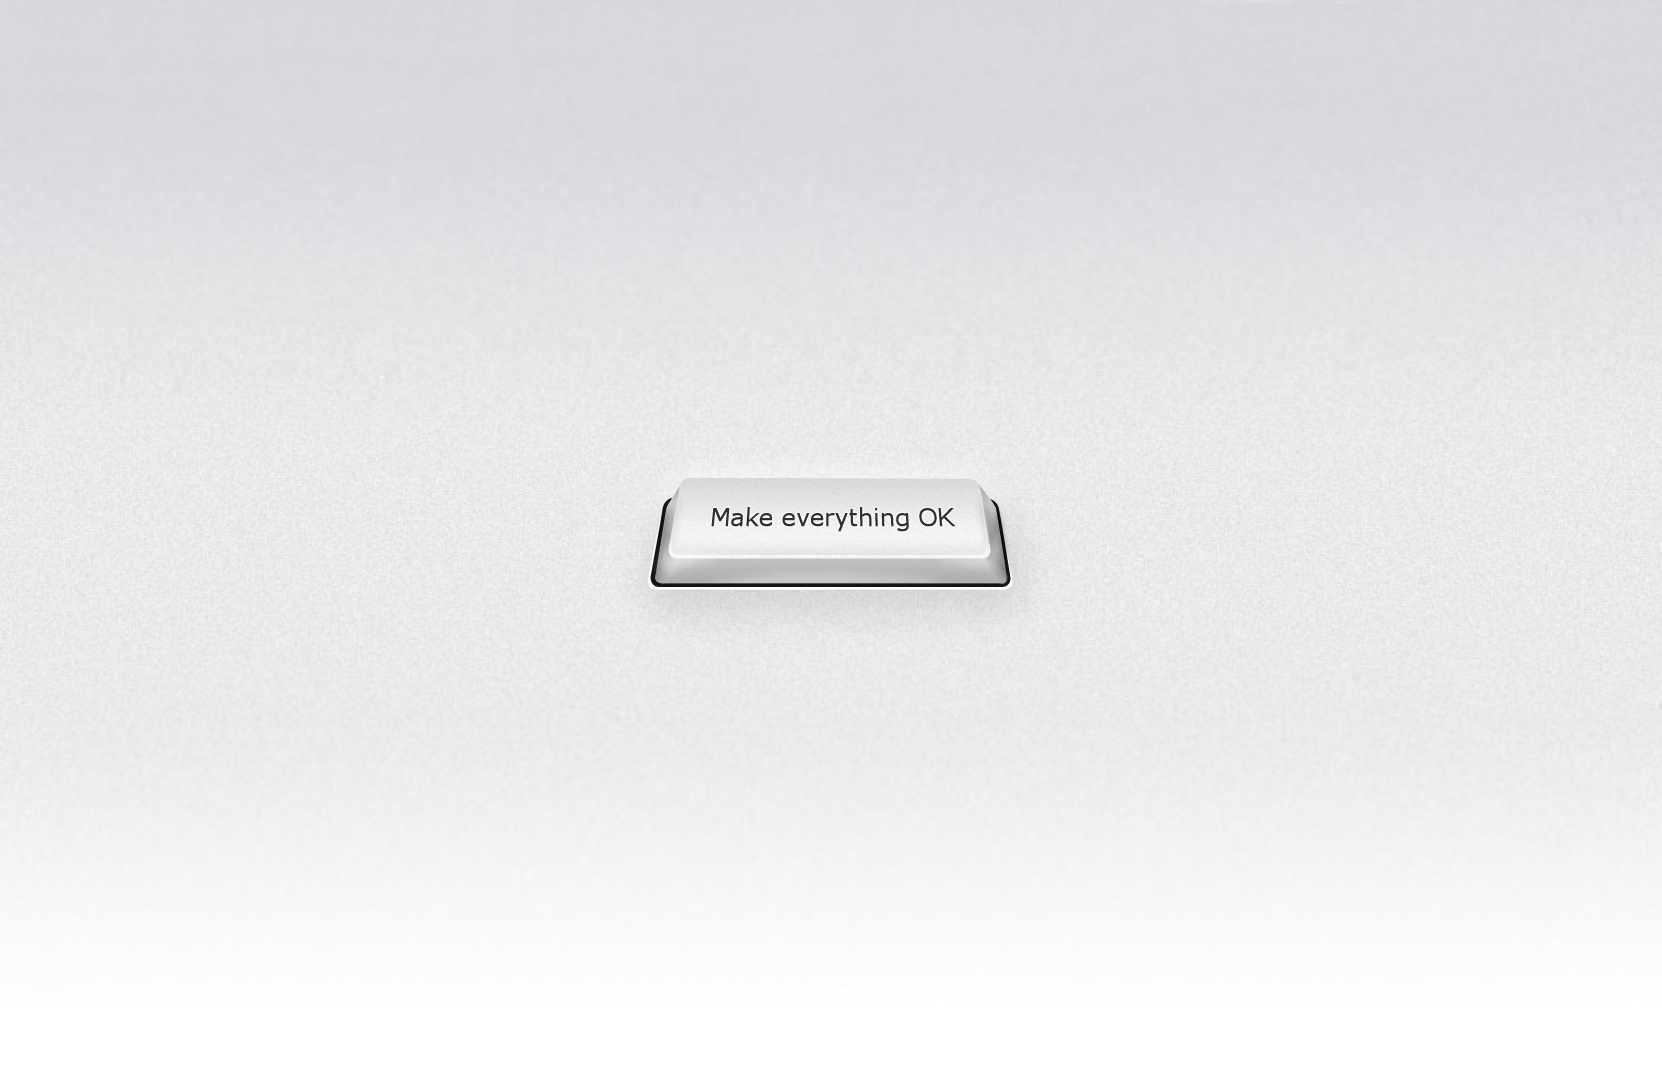 The make everything ok button!